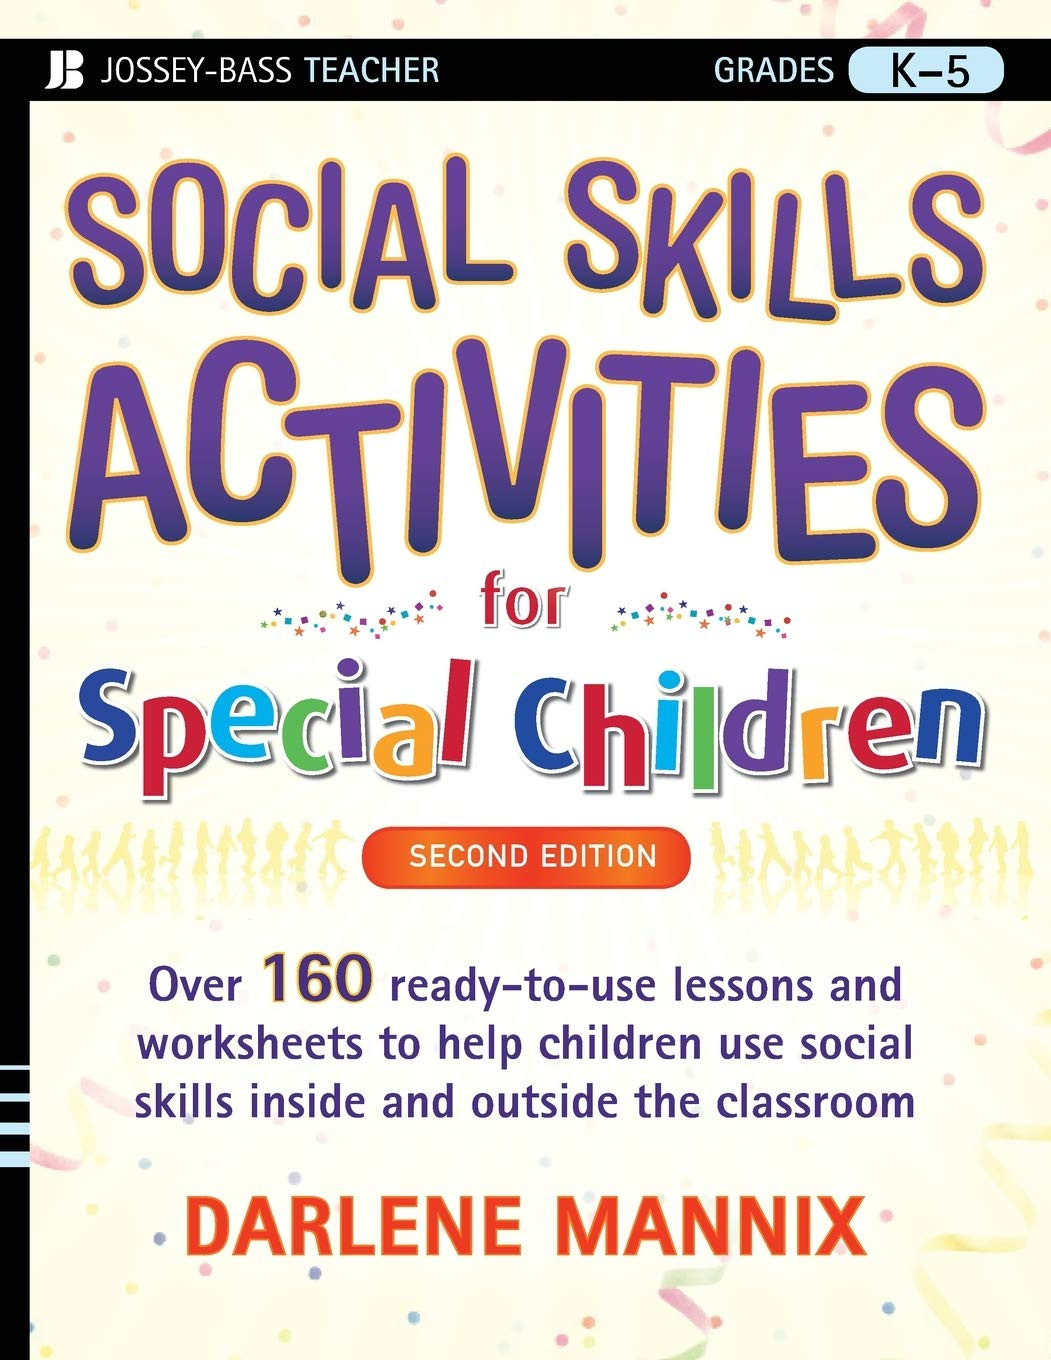 Social Skills Activities Worksheets social Skills Activities for Special Children Mannix